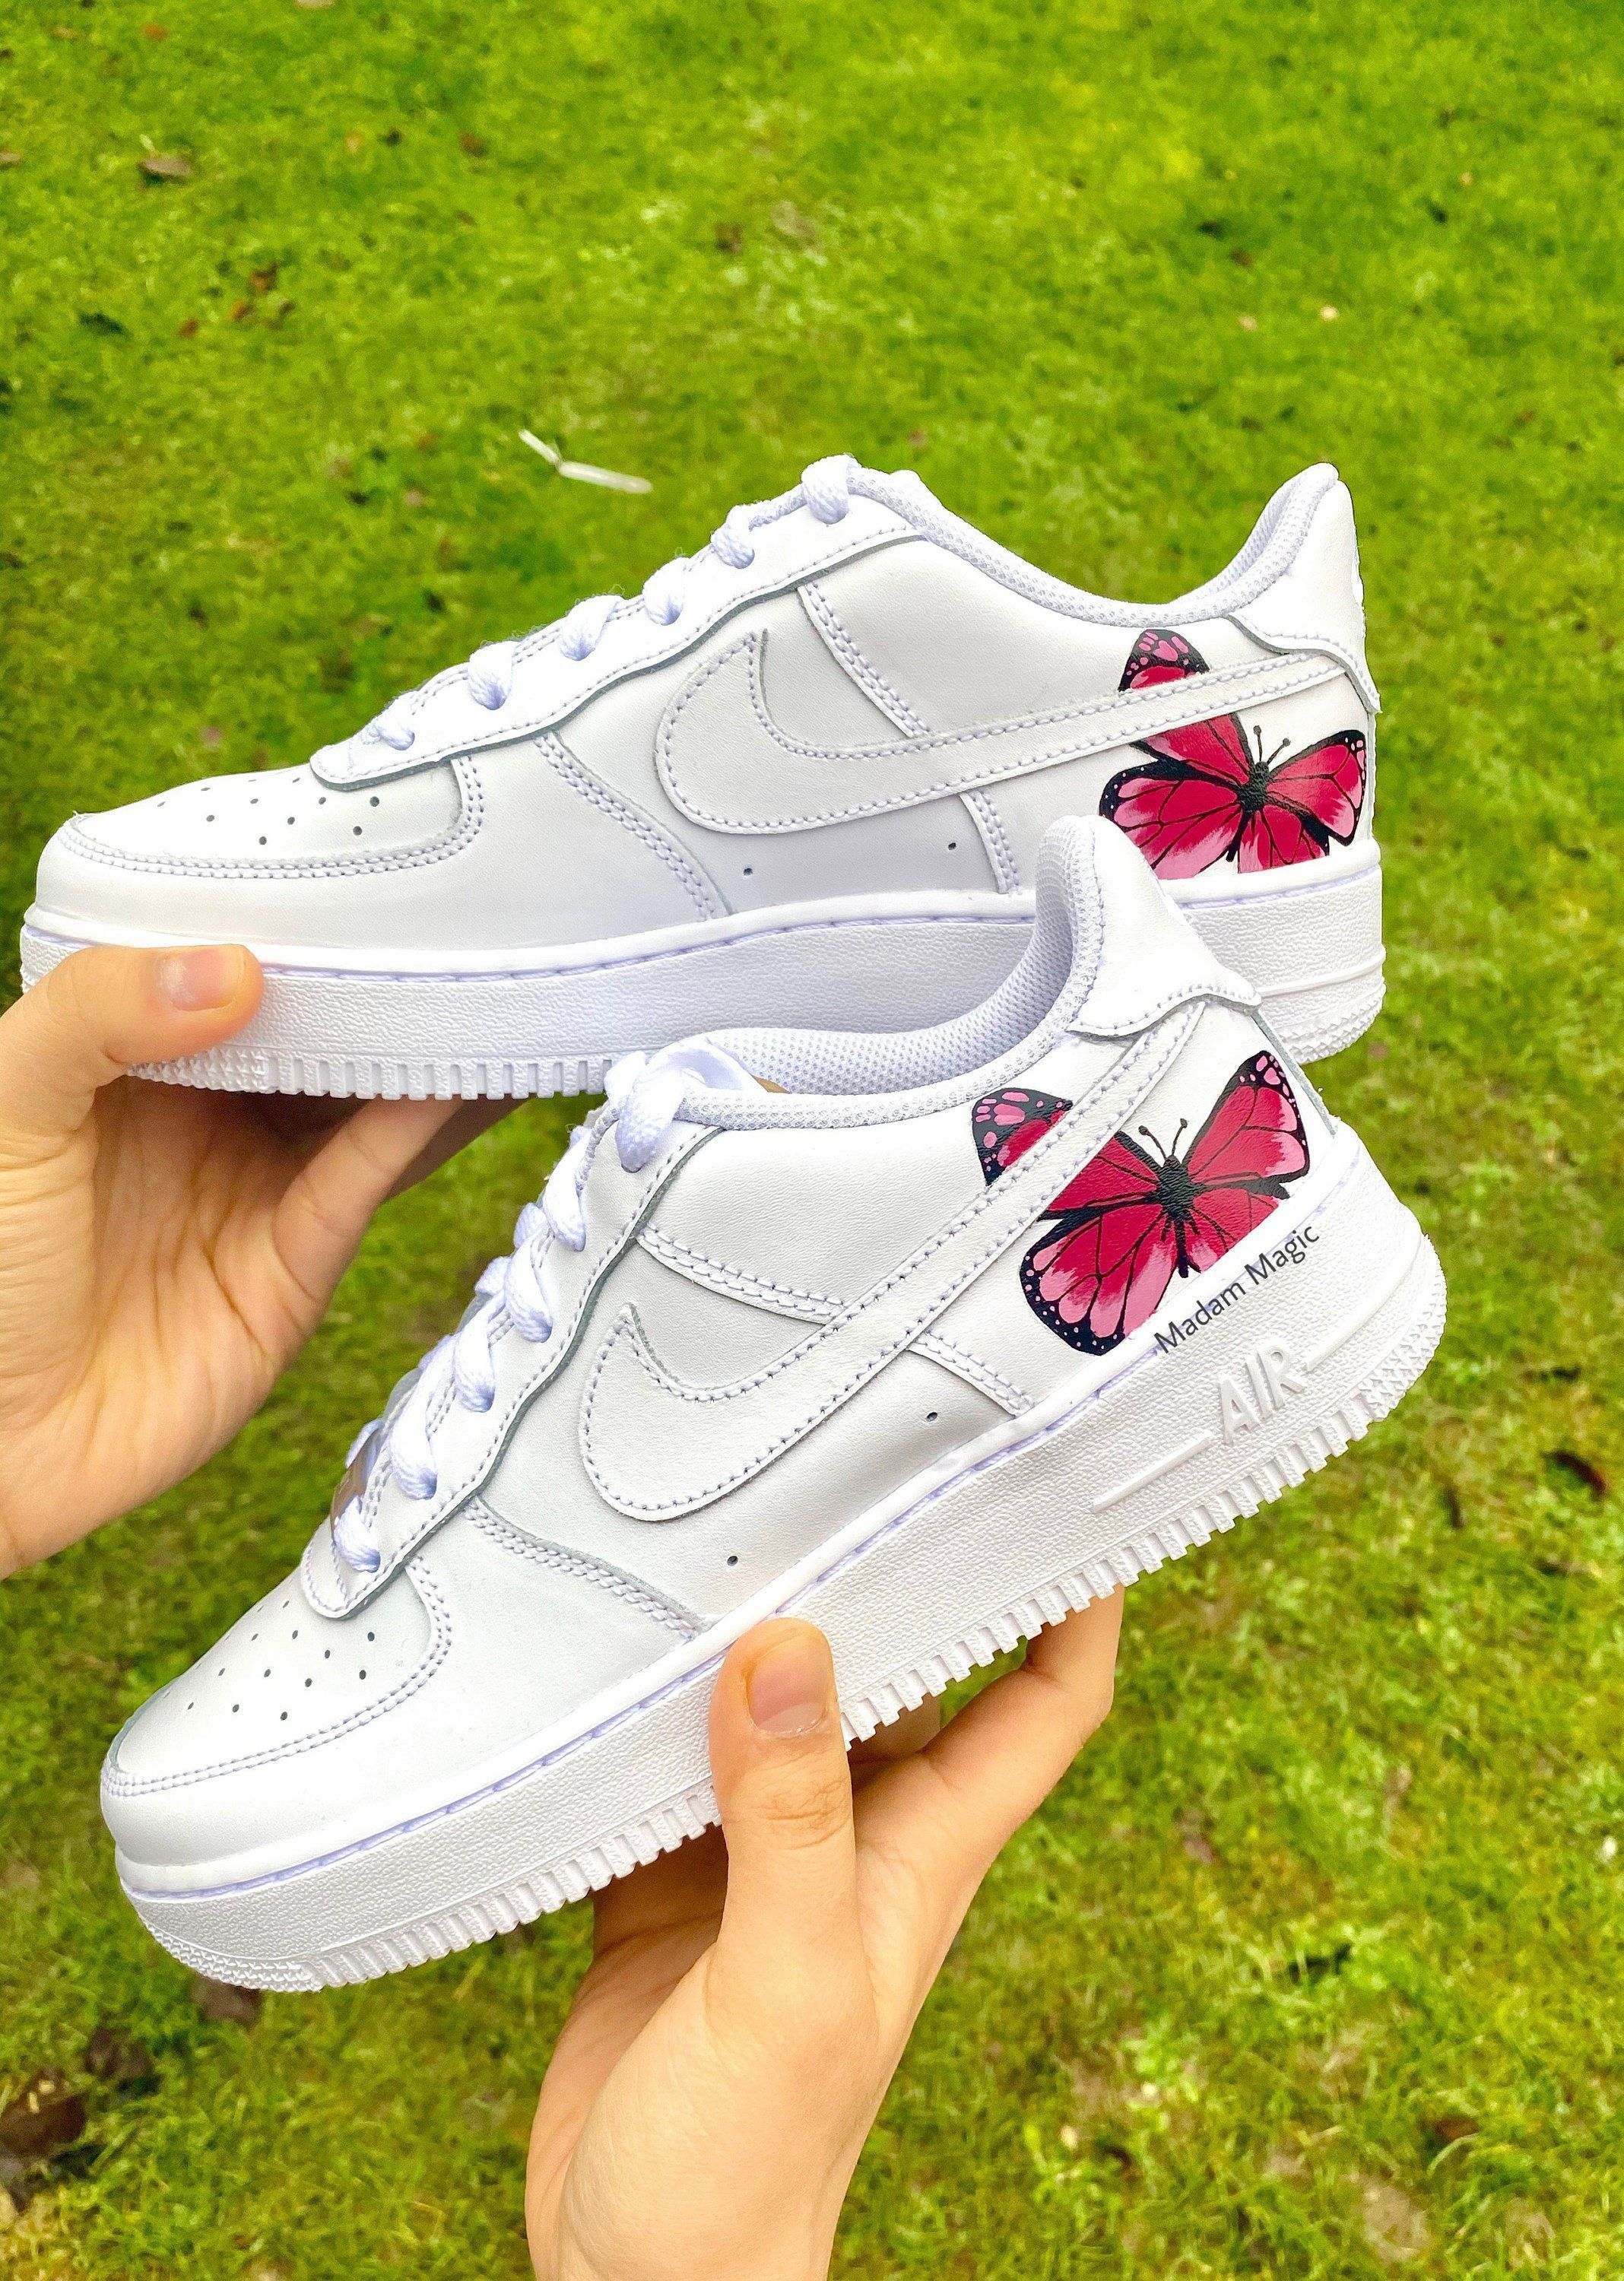 Custom Nike Air Force 1 Low Single Pink Butterfly Air Force